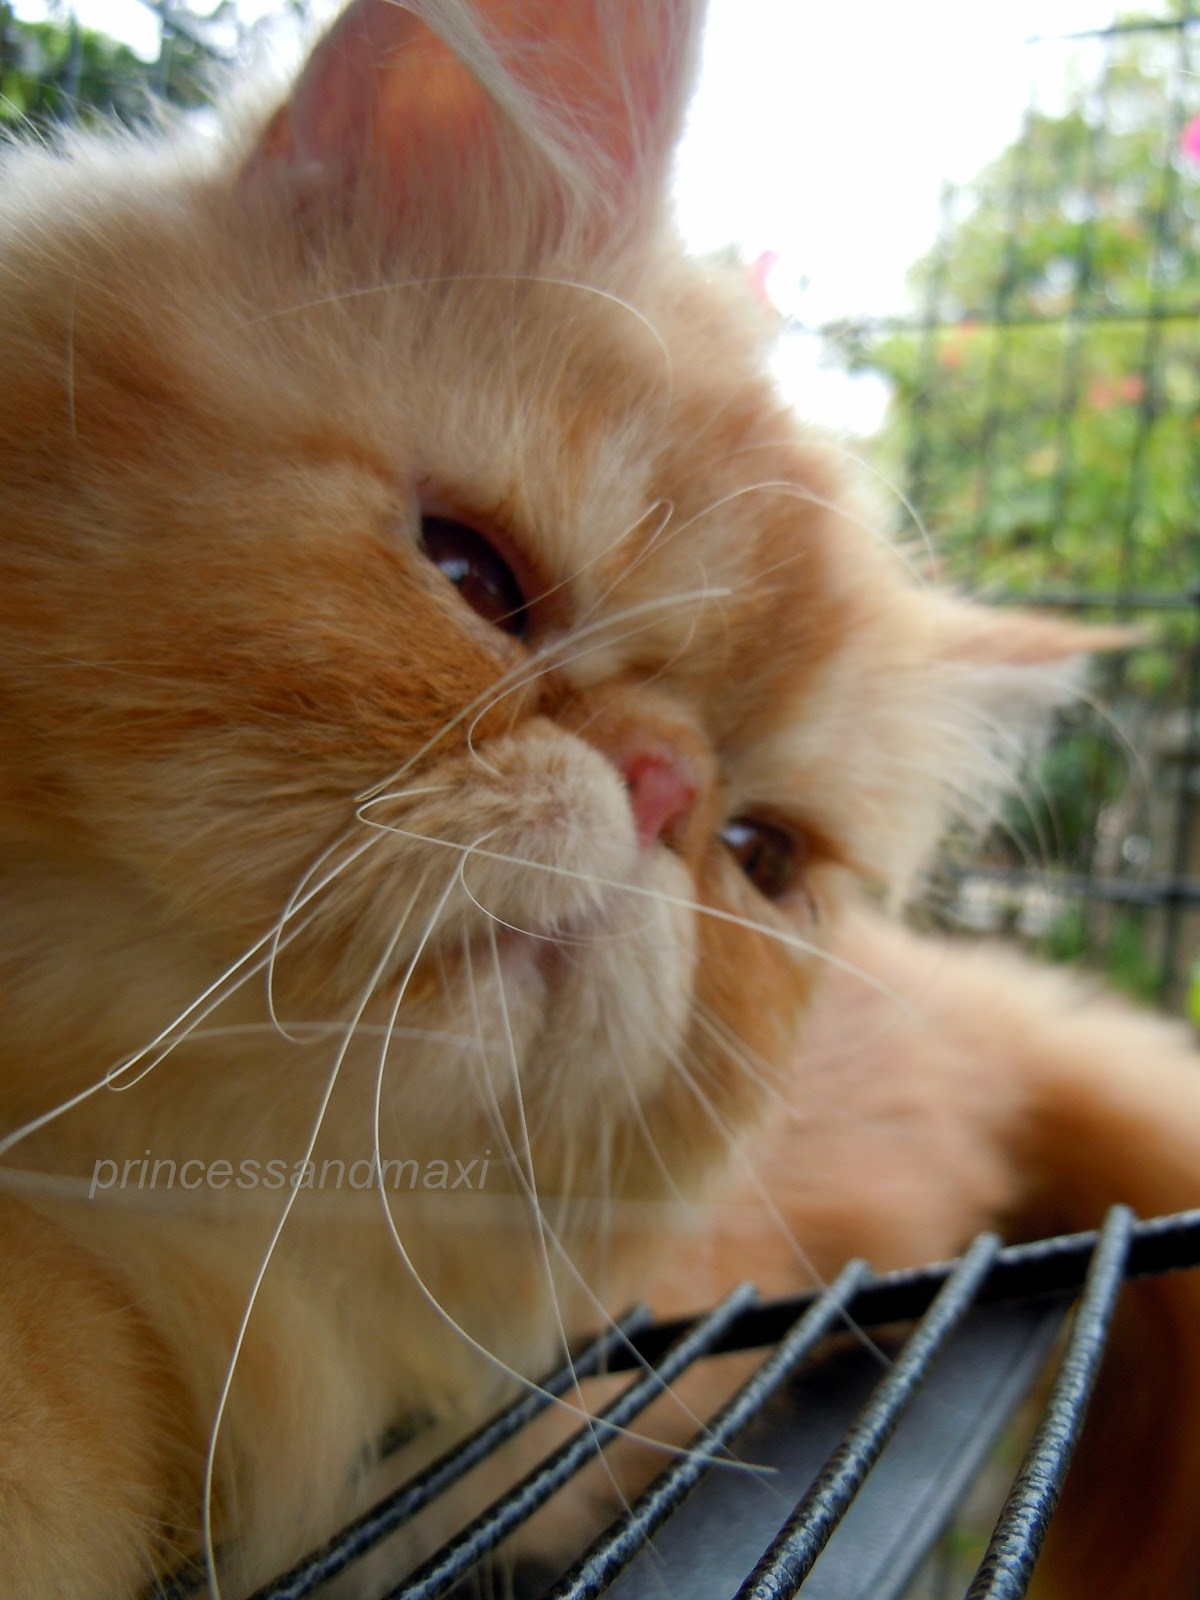 MUSINGS OF A CAT: A TRIBUTE TO MAXI, ANGEL AND SAD TIMES HERE